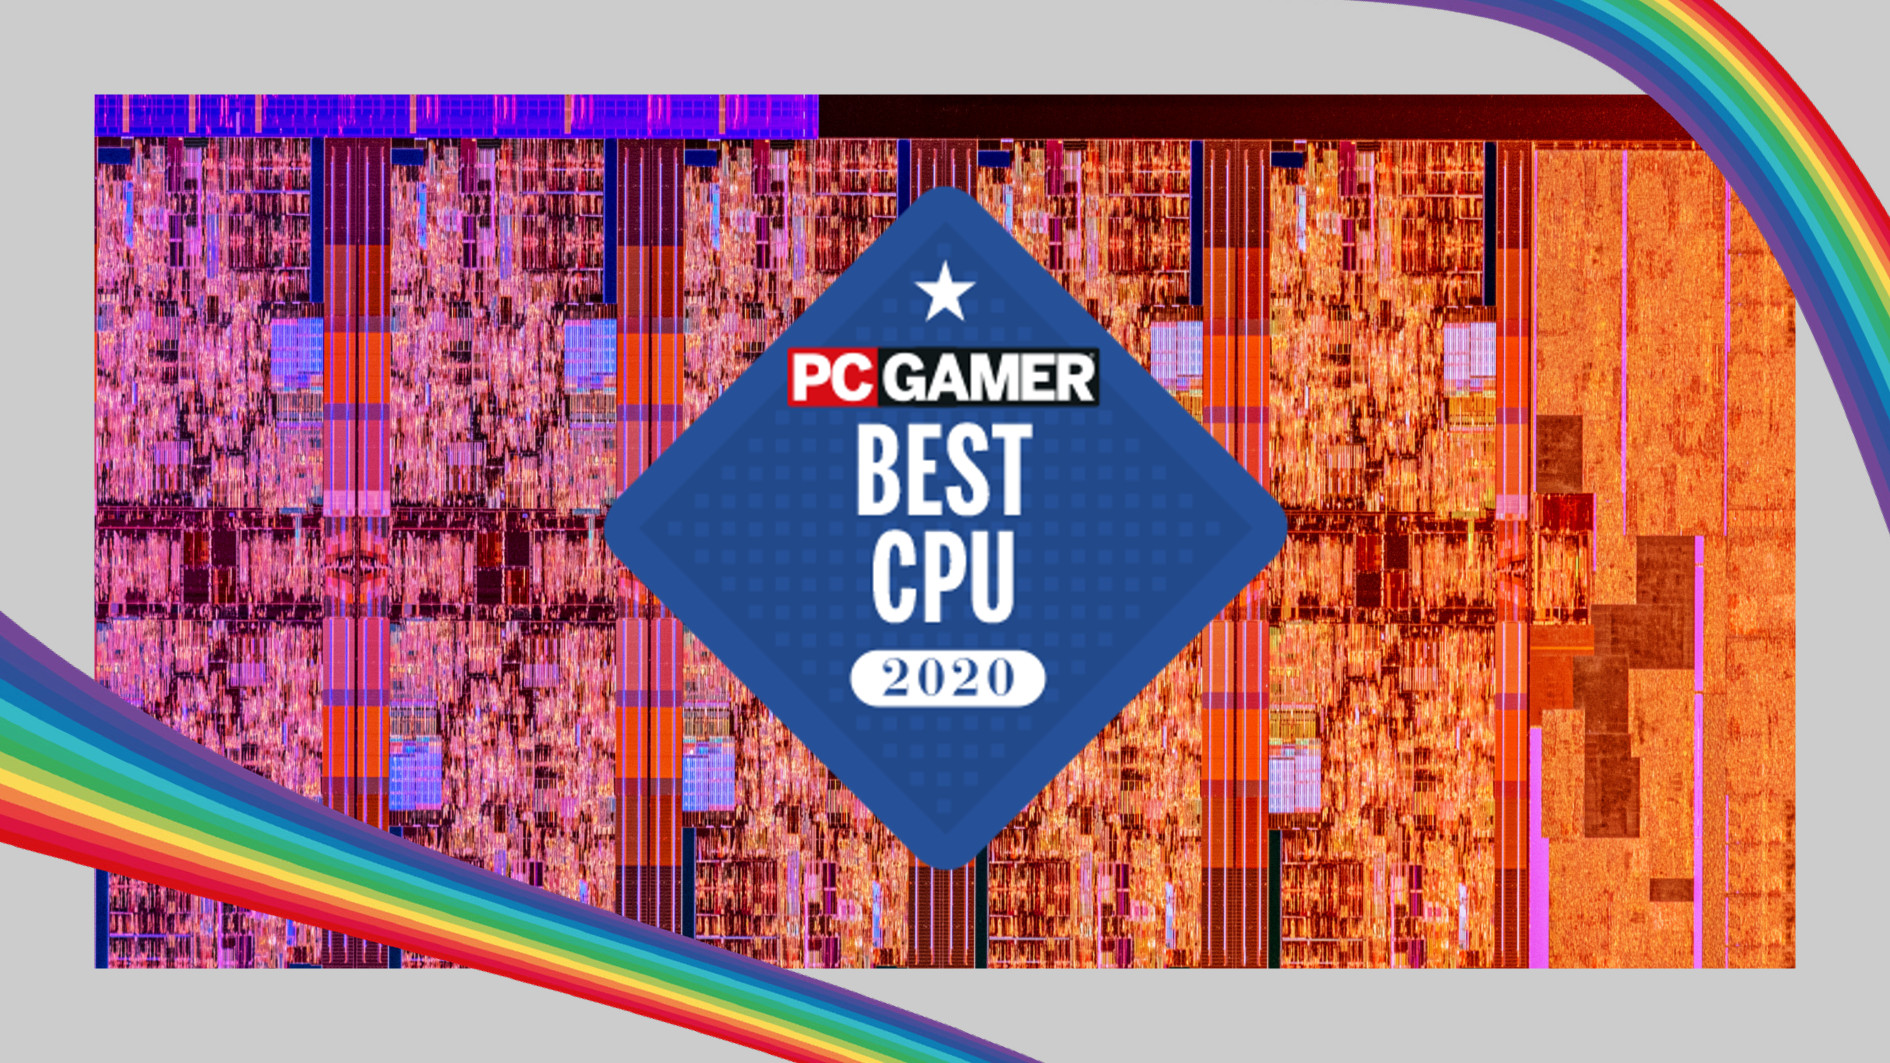 PC Gamer Hardware Awards: What is the best gaming CPU of 2020?